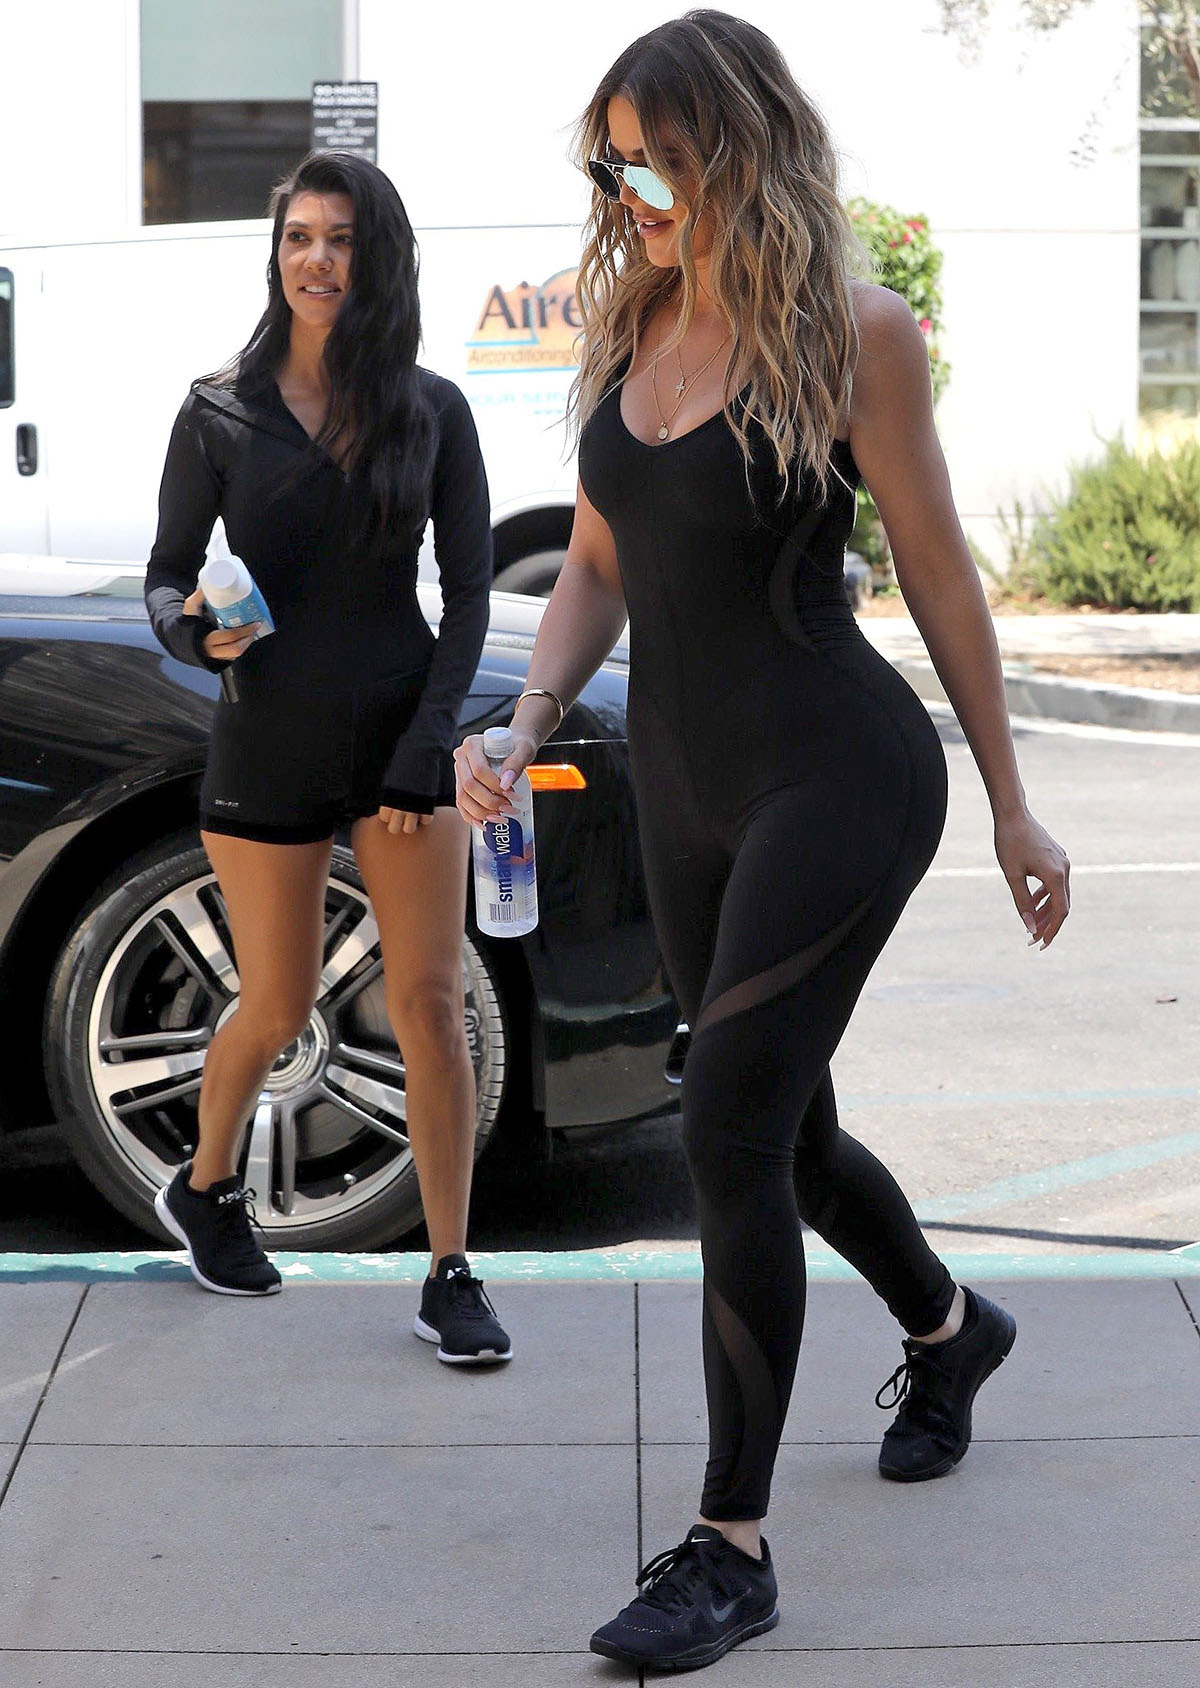 Kourtney and Khloé Take Workout Style to the Next Level